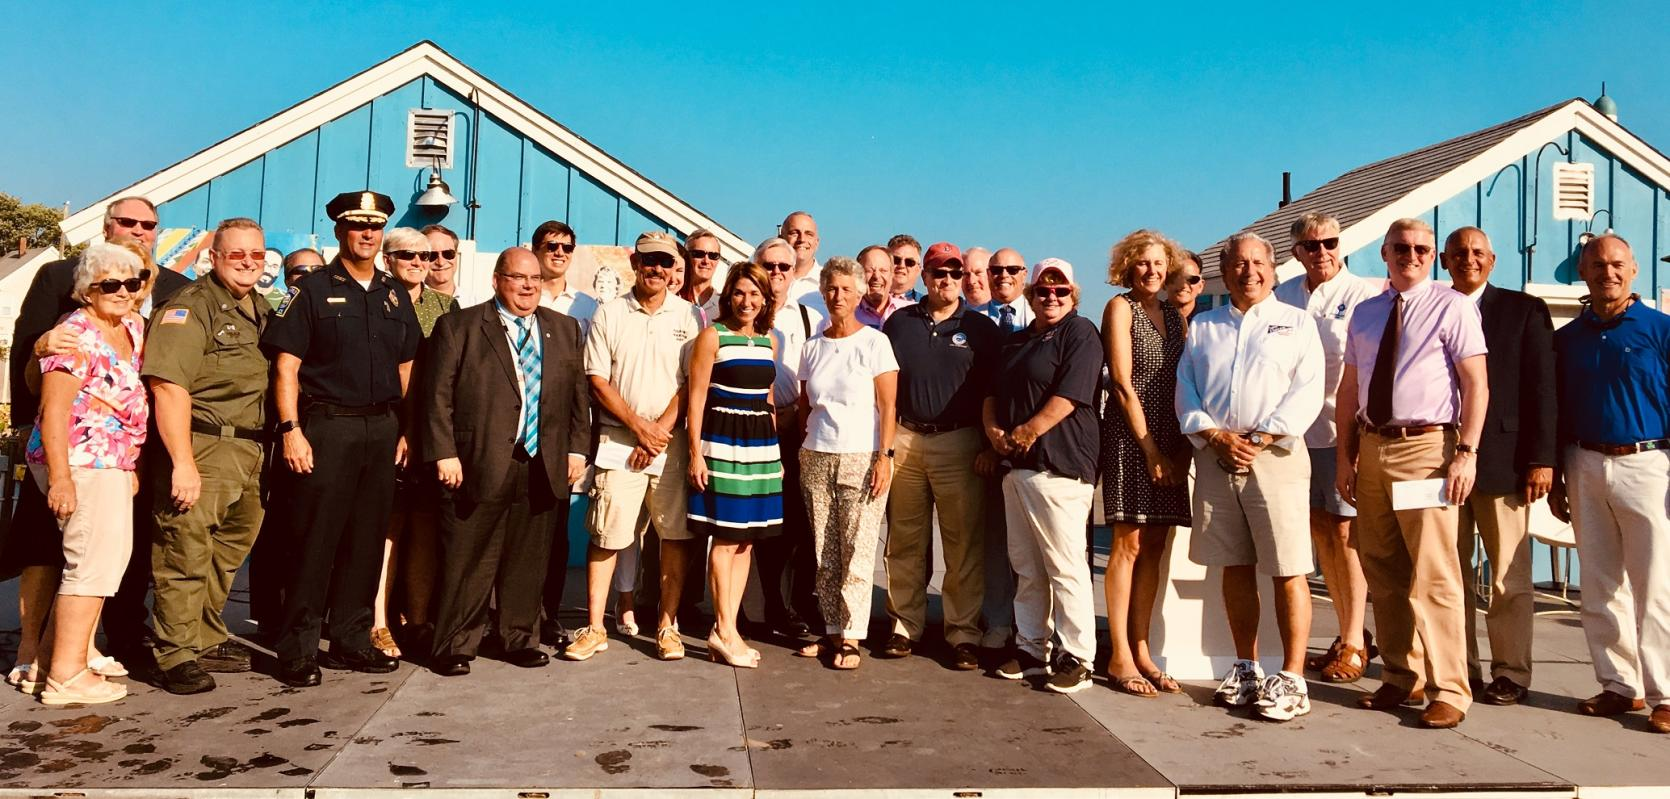 Lt. Governor Karyn Polito visited Hyannis to announce $3.6 million in dredging grants to 10 communities.